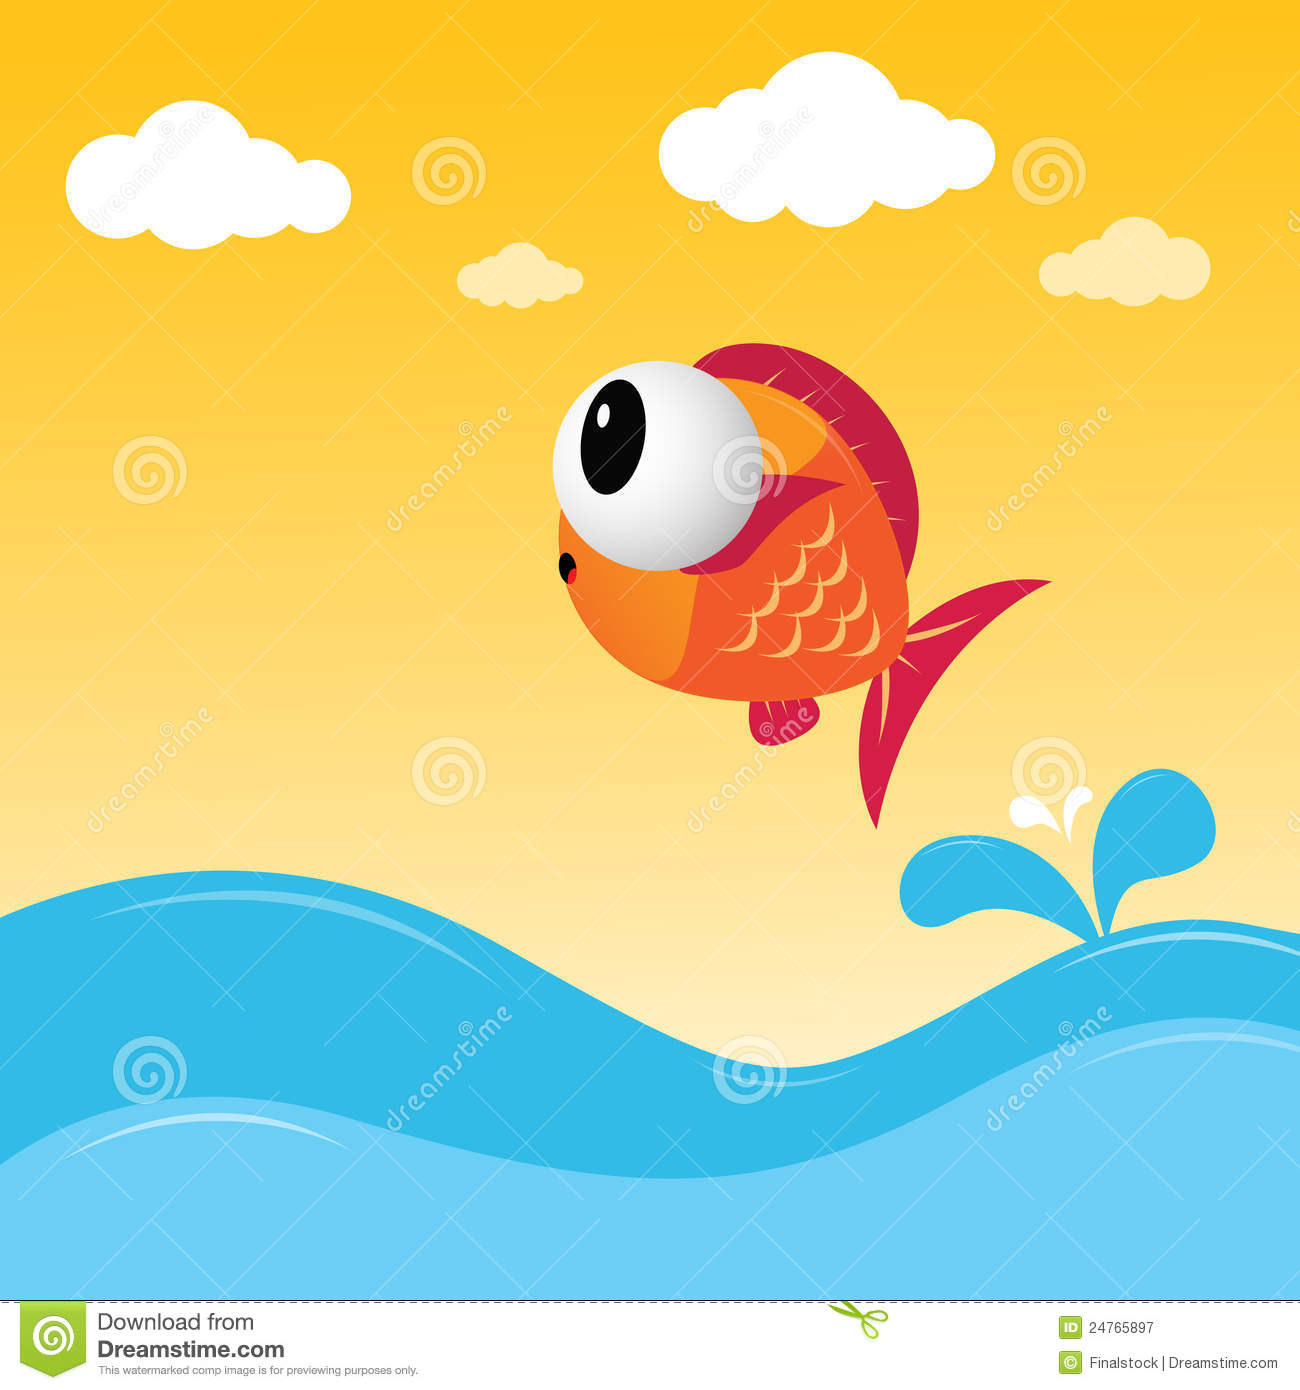 Fish jumping out of the water royalty free stock for Dream about fish out of water